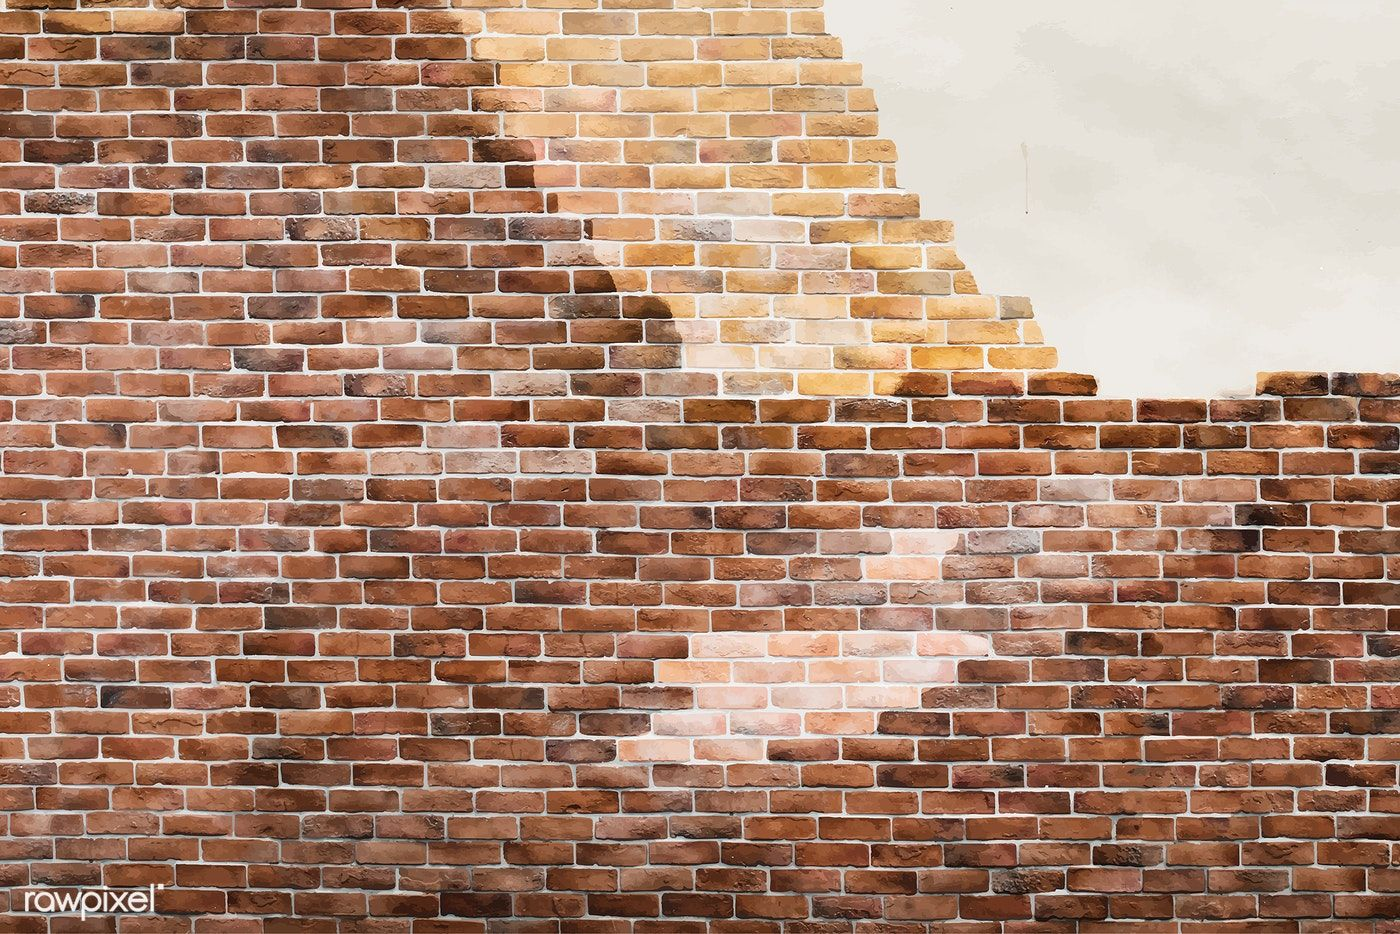 Brown Brick Wall With A Cracked Wall Background Vector Free Image By Rawpixel Com Aom Woraluck Chim Kung P Cracked Wall Wall Background Brick Texture